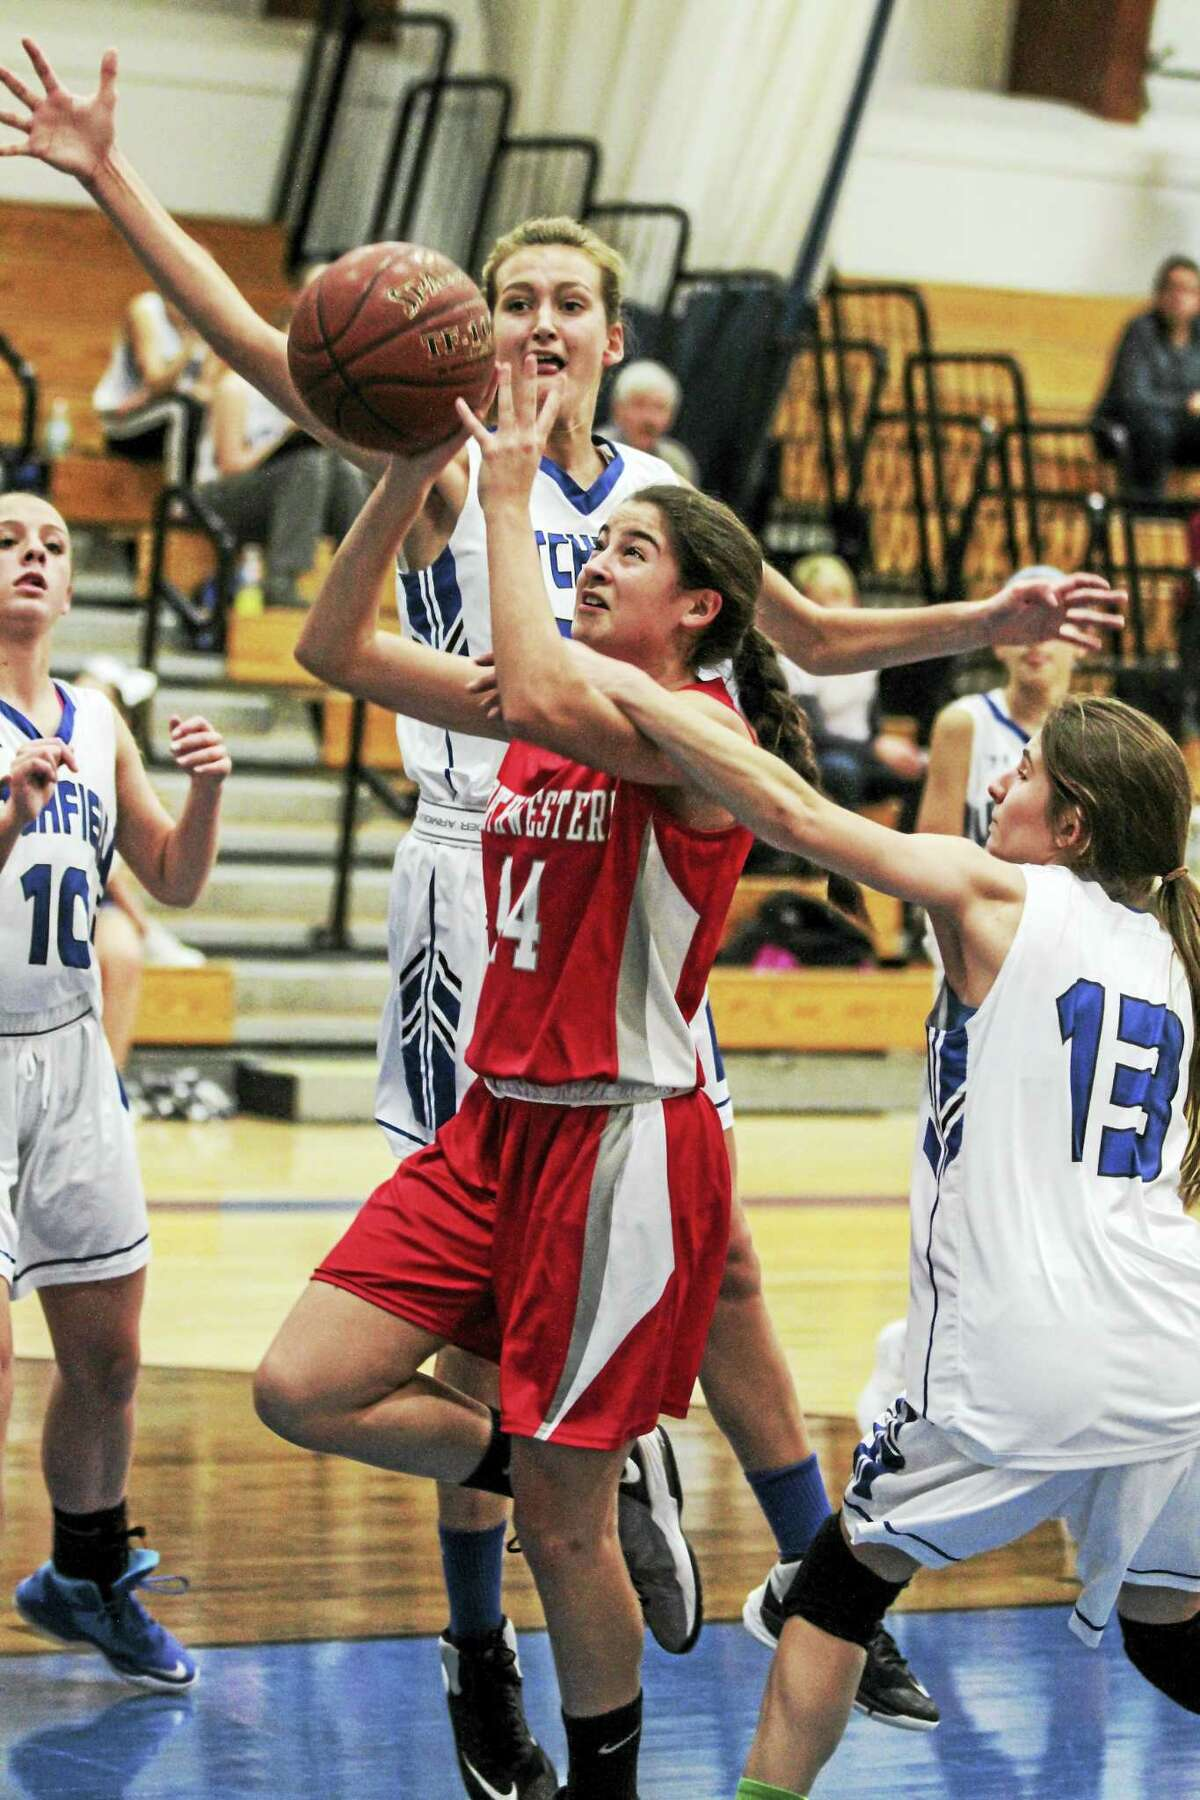 Northwestern sophomore Addie Hester finds a rough welcome in the paint in Thursday's Litchfield win.